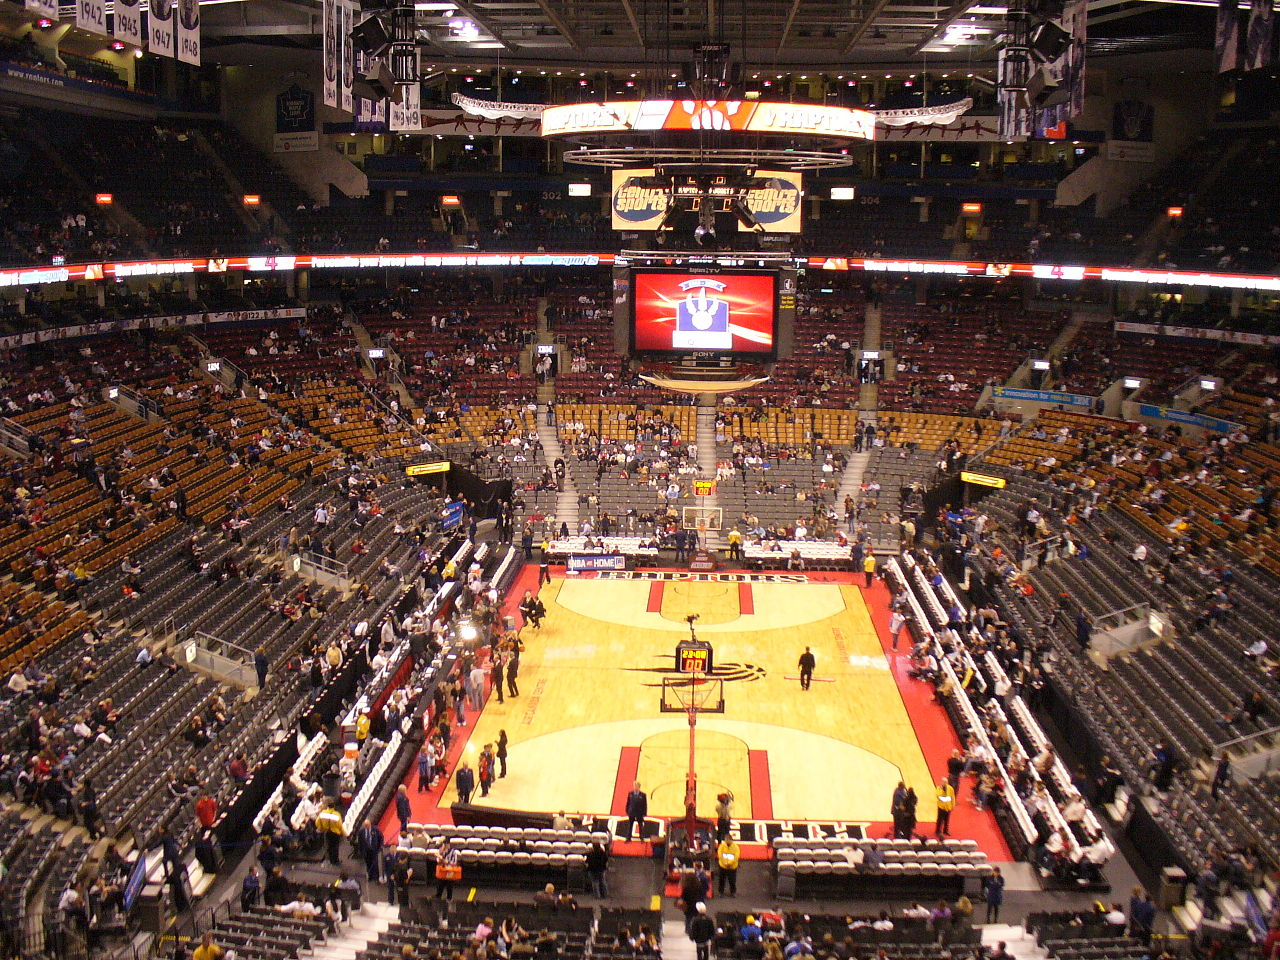 Entertainment District - Photo of inside of the Air Canada Centre and basketball court